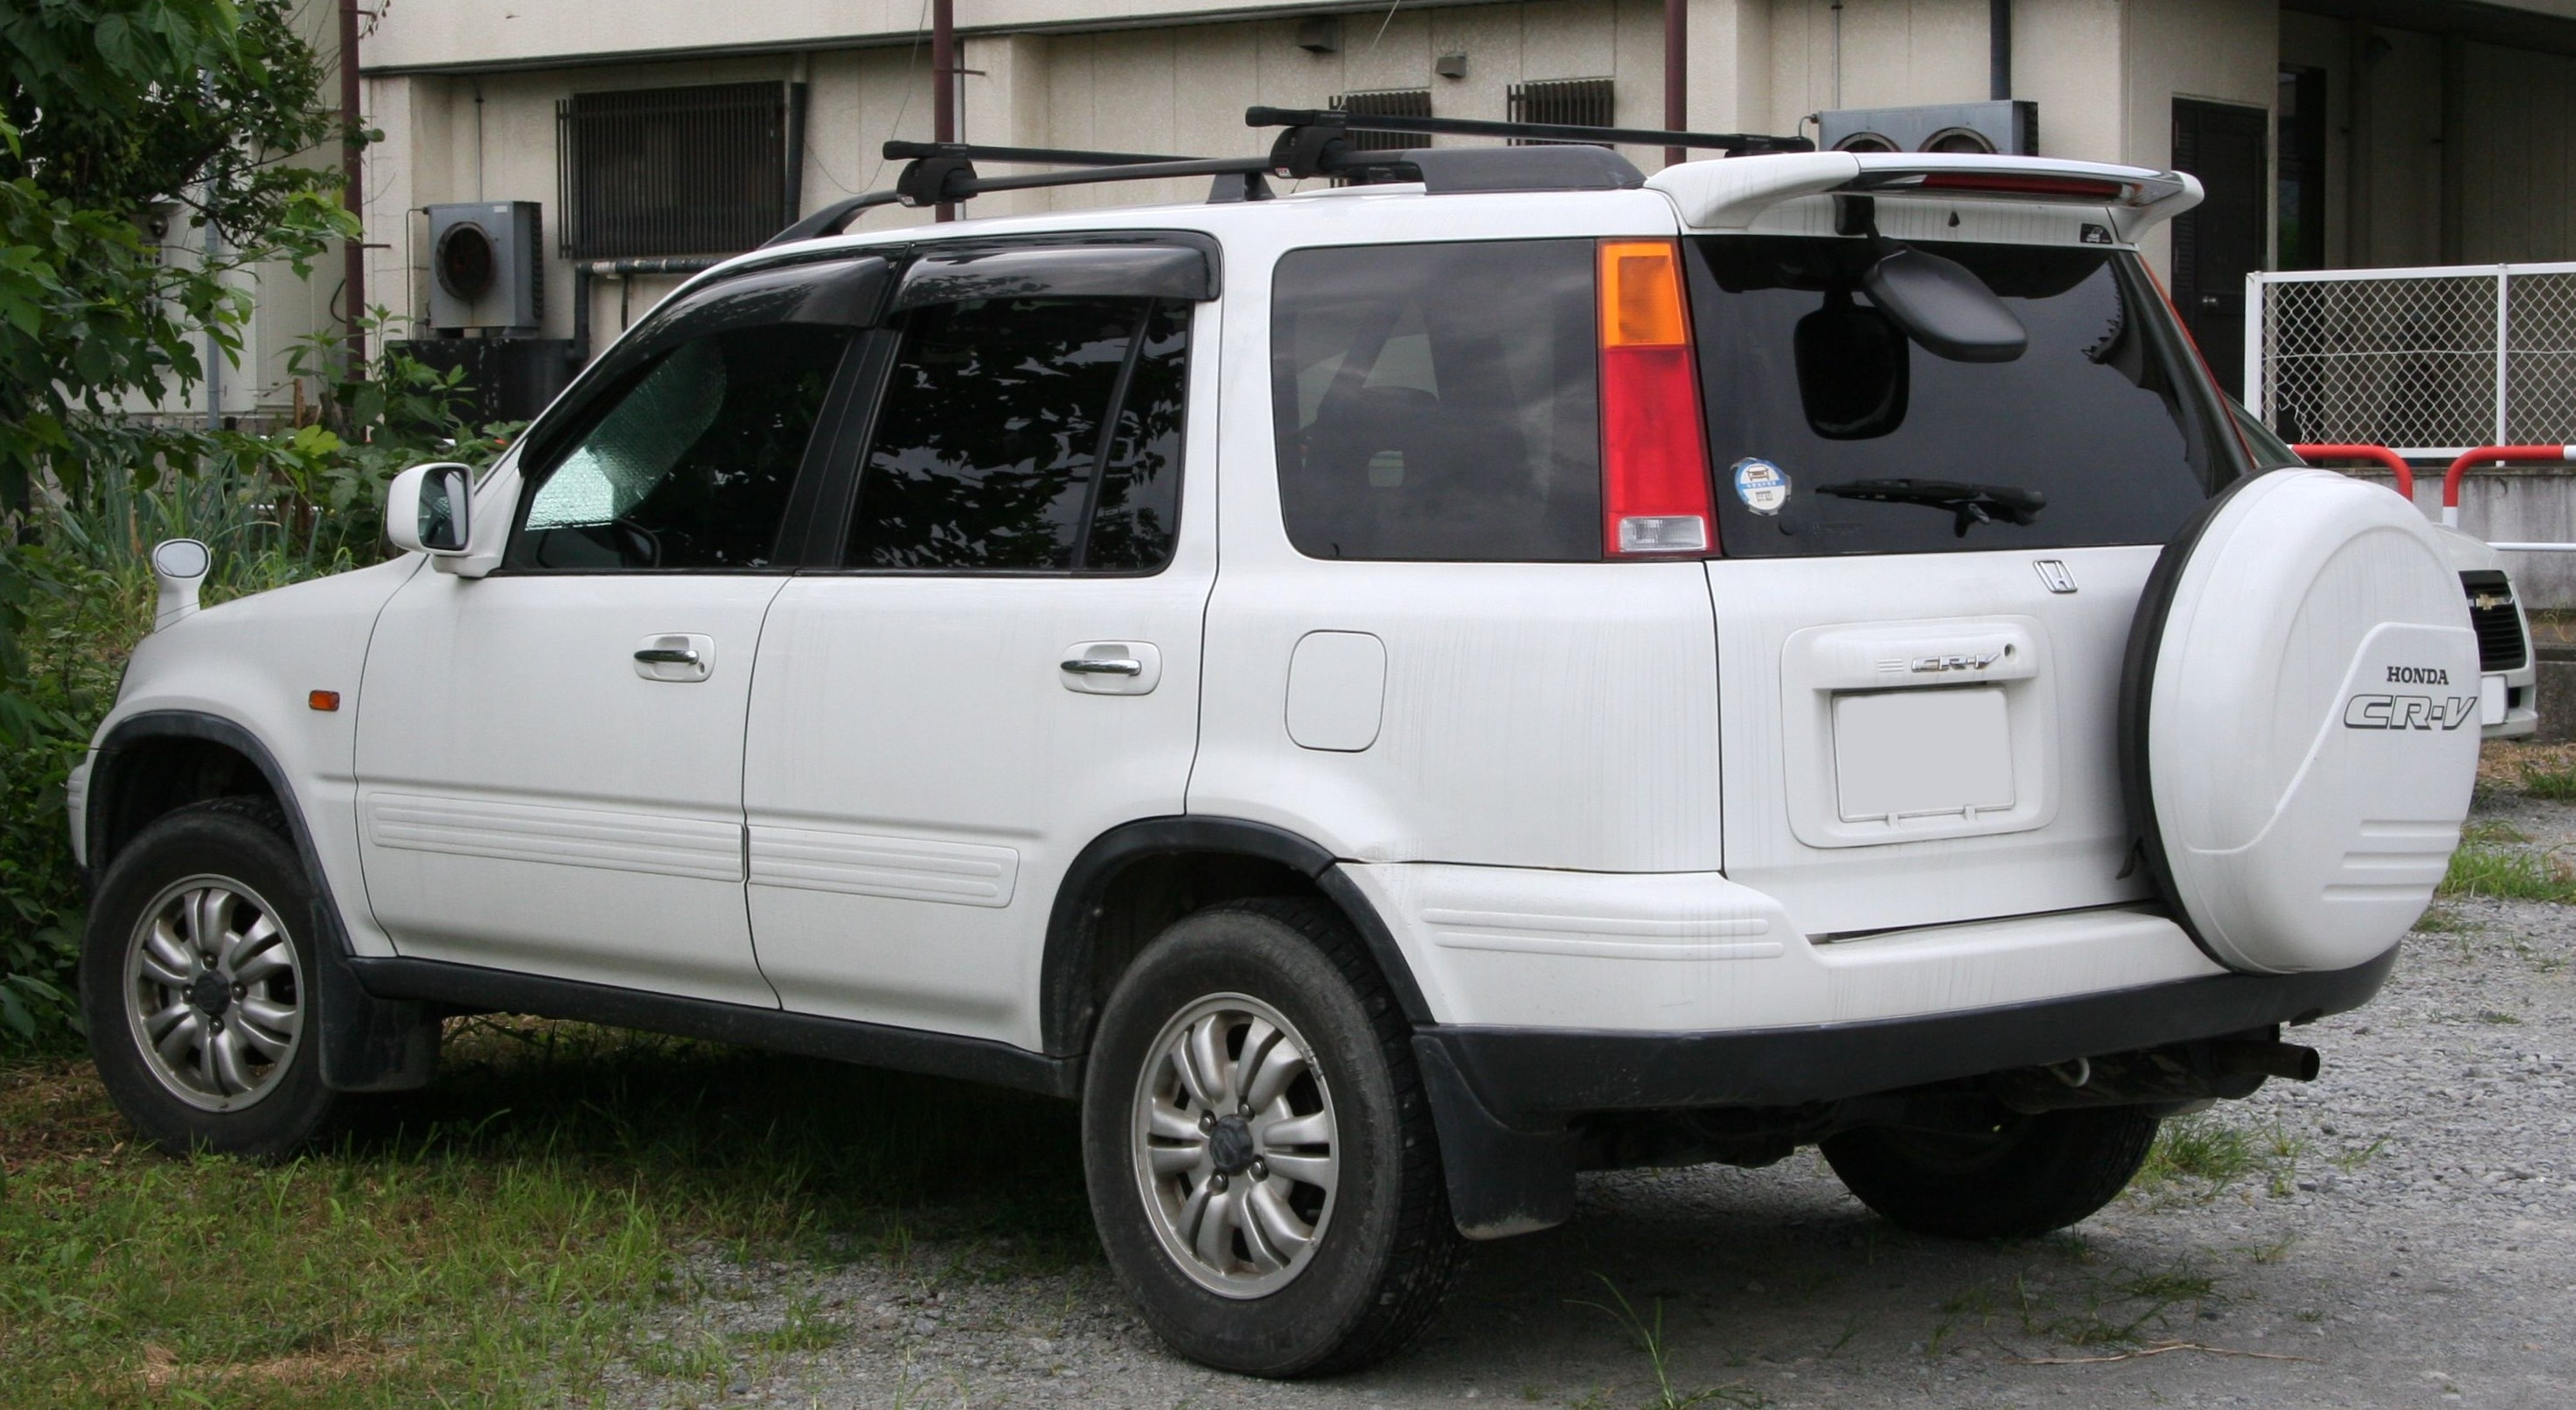 file 1st generation honda cr v rear     wikimedia commons